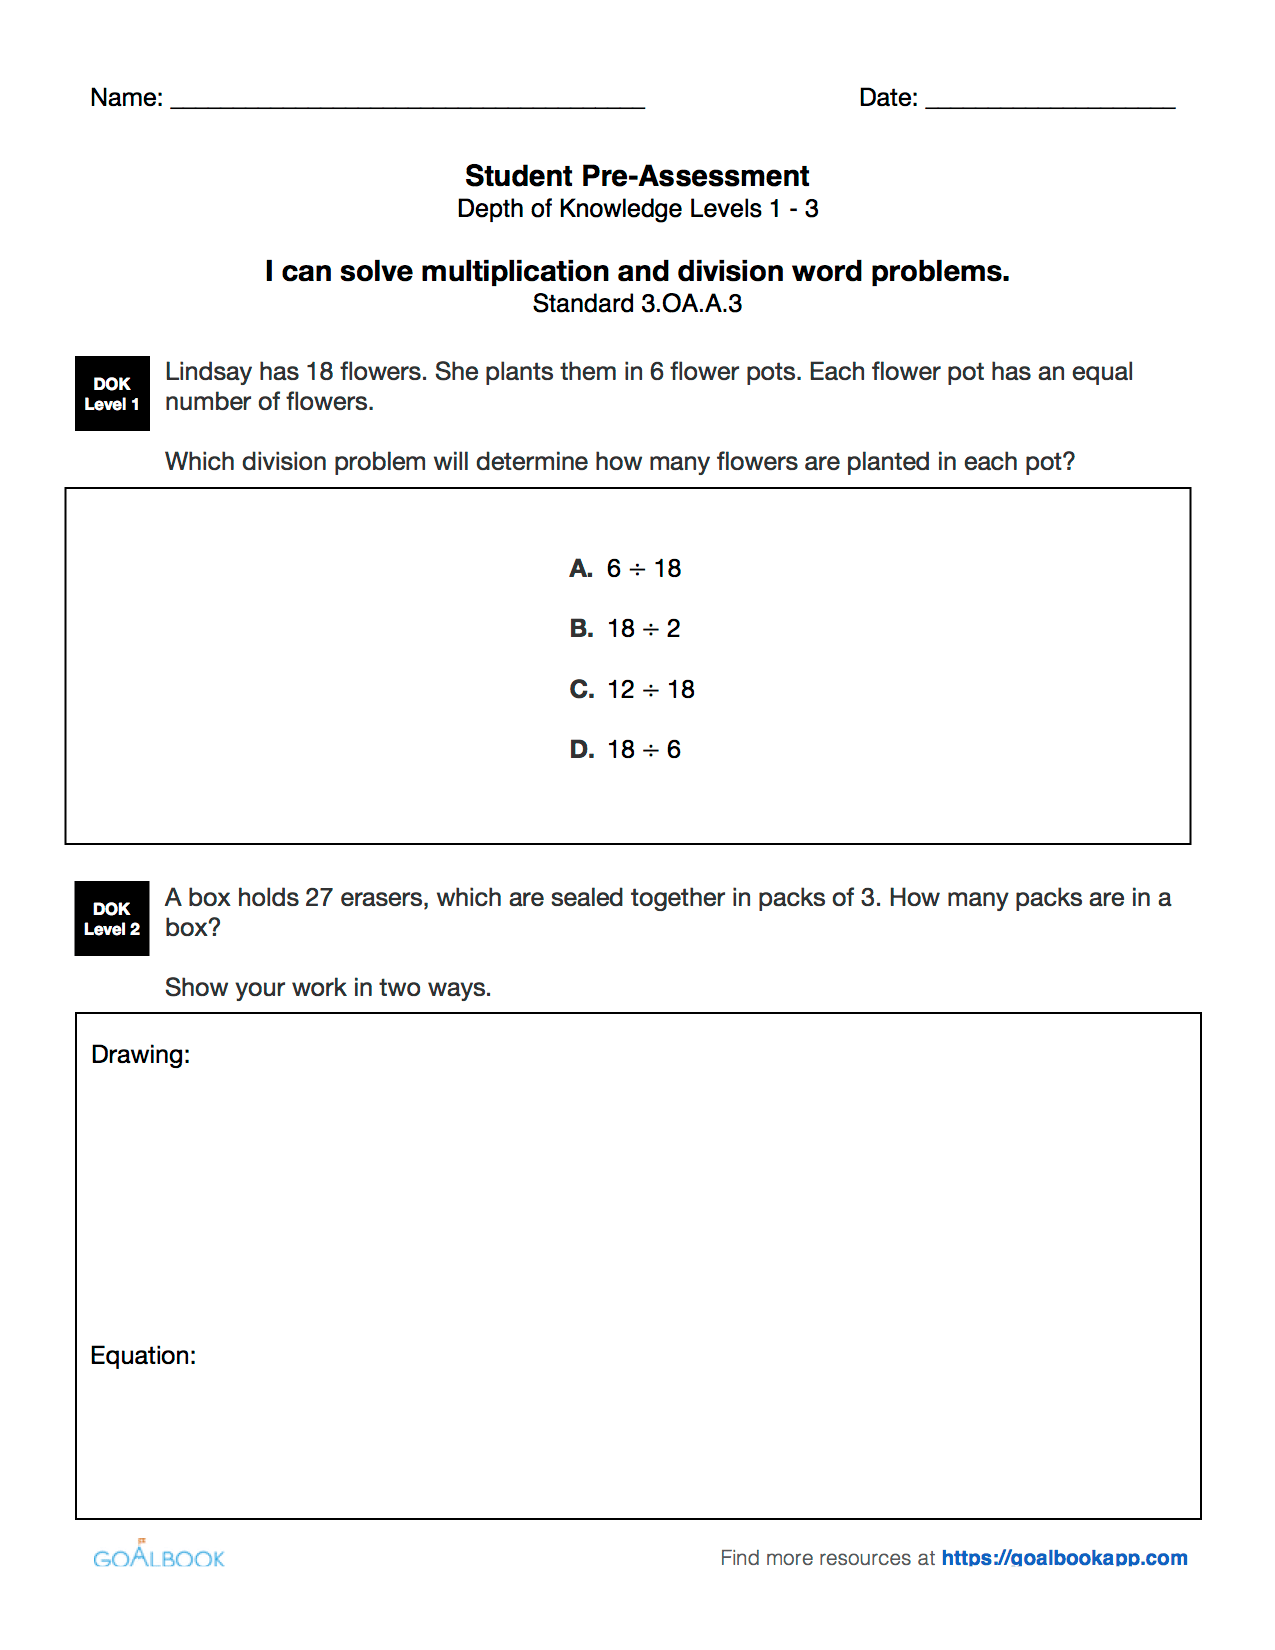 3 Oa 3 Multiplication And Division Word Problems